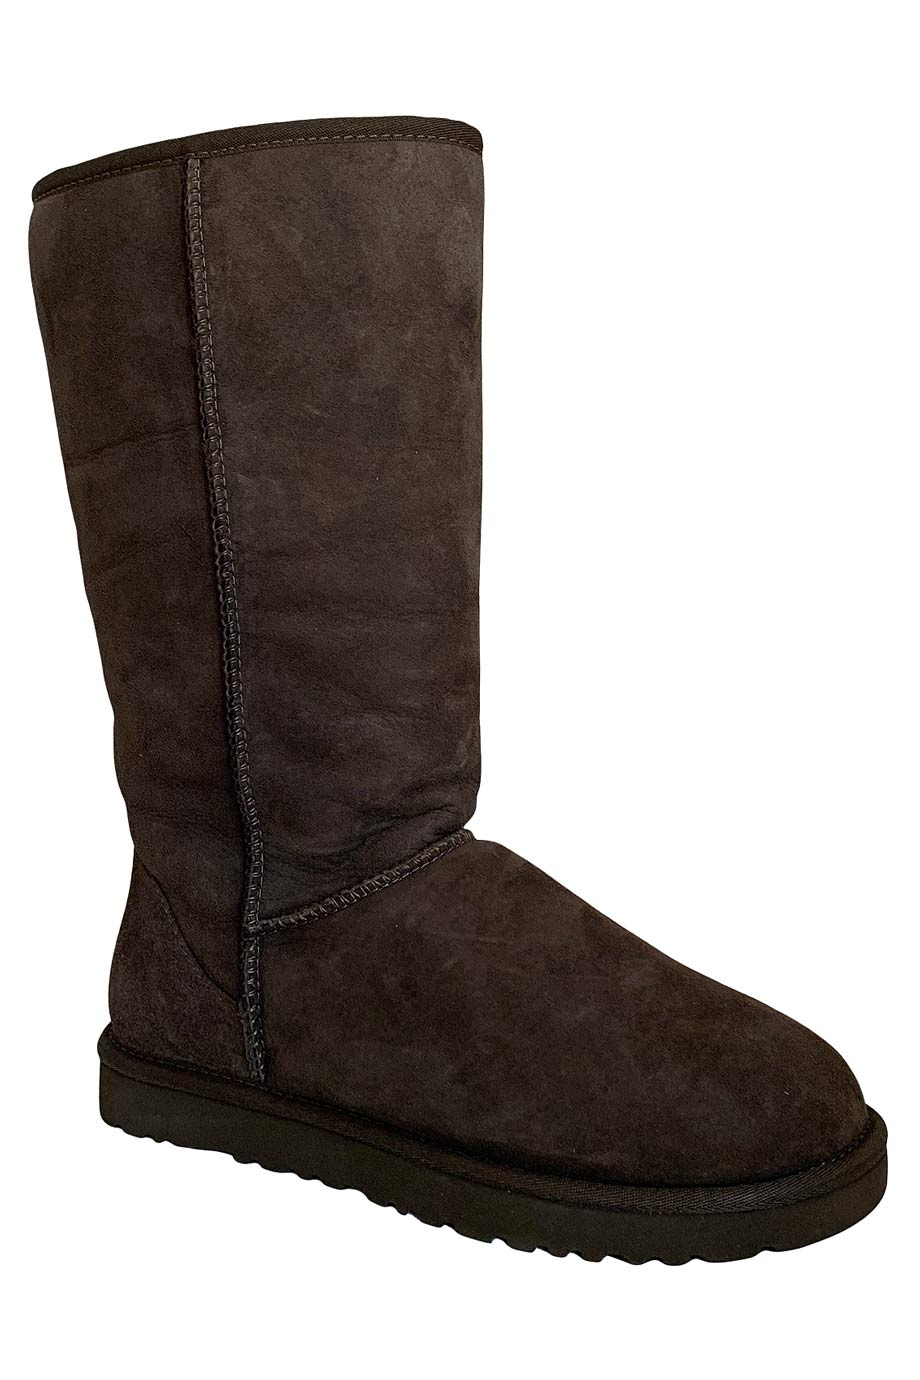 UGG Australia Chocolate Brown Sheepskin Classic Tall Boots / Sz 8